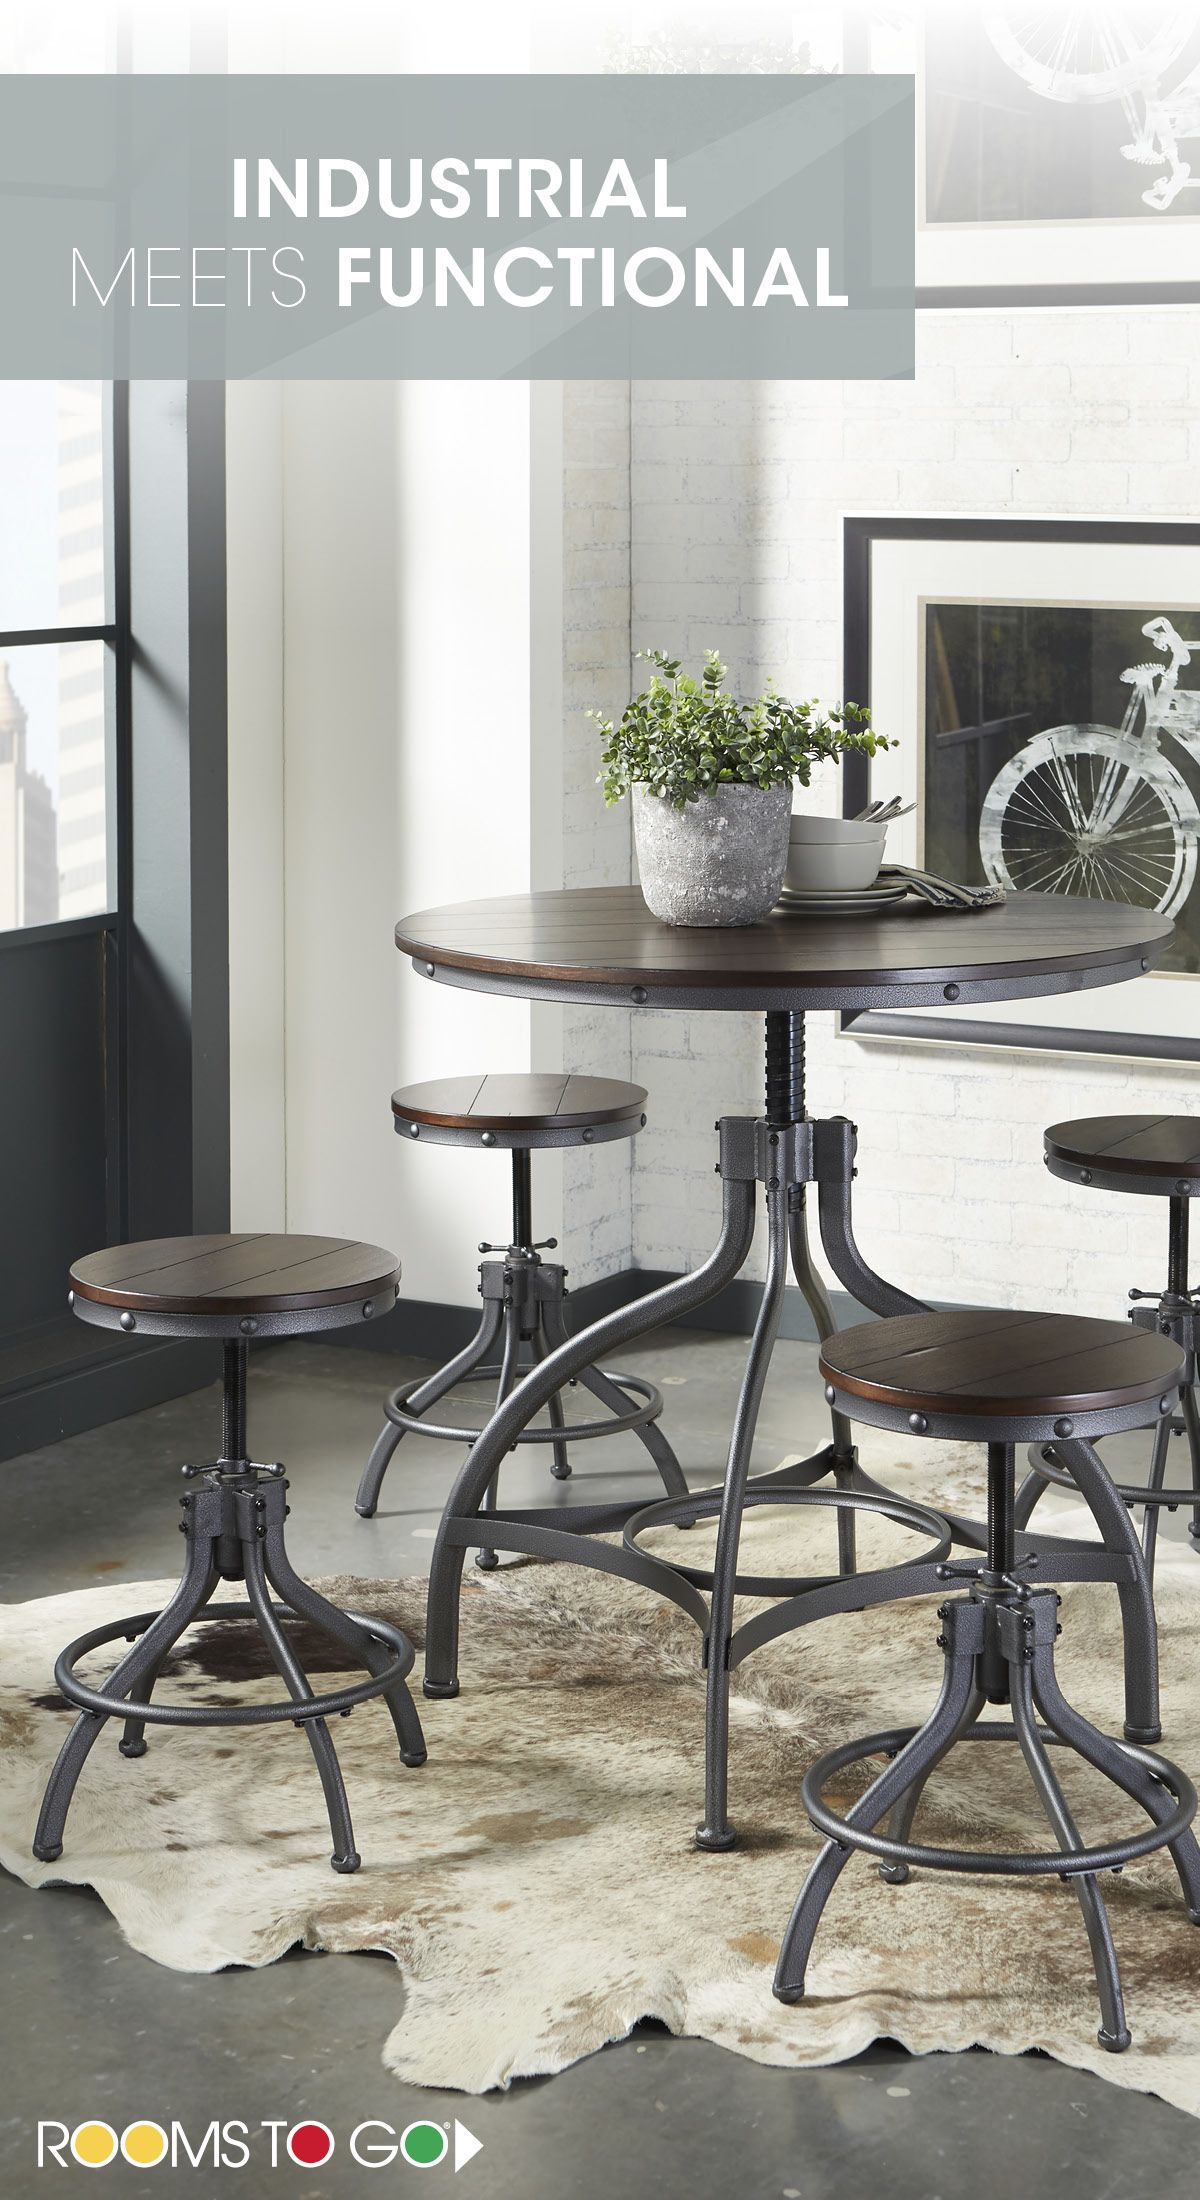 Create An Industrial Chic Look In Your Dining Space With The Cool Factory Inspired Style Of The Industr Dining Room Sets Furniture Affordable Dining Room Sets